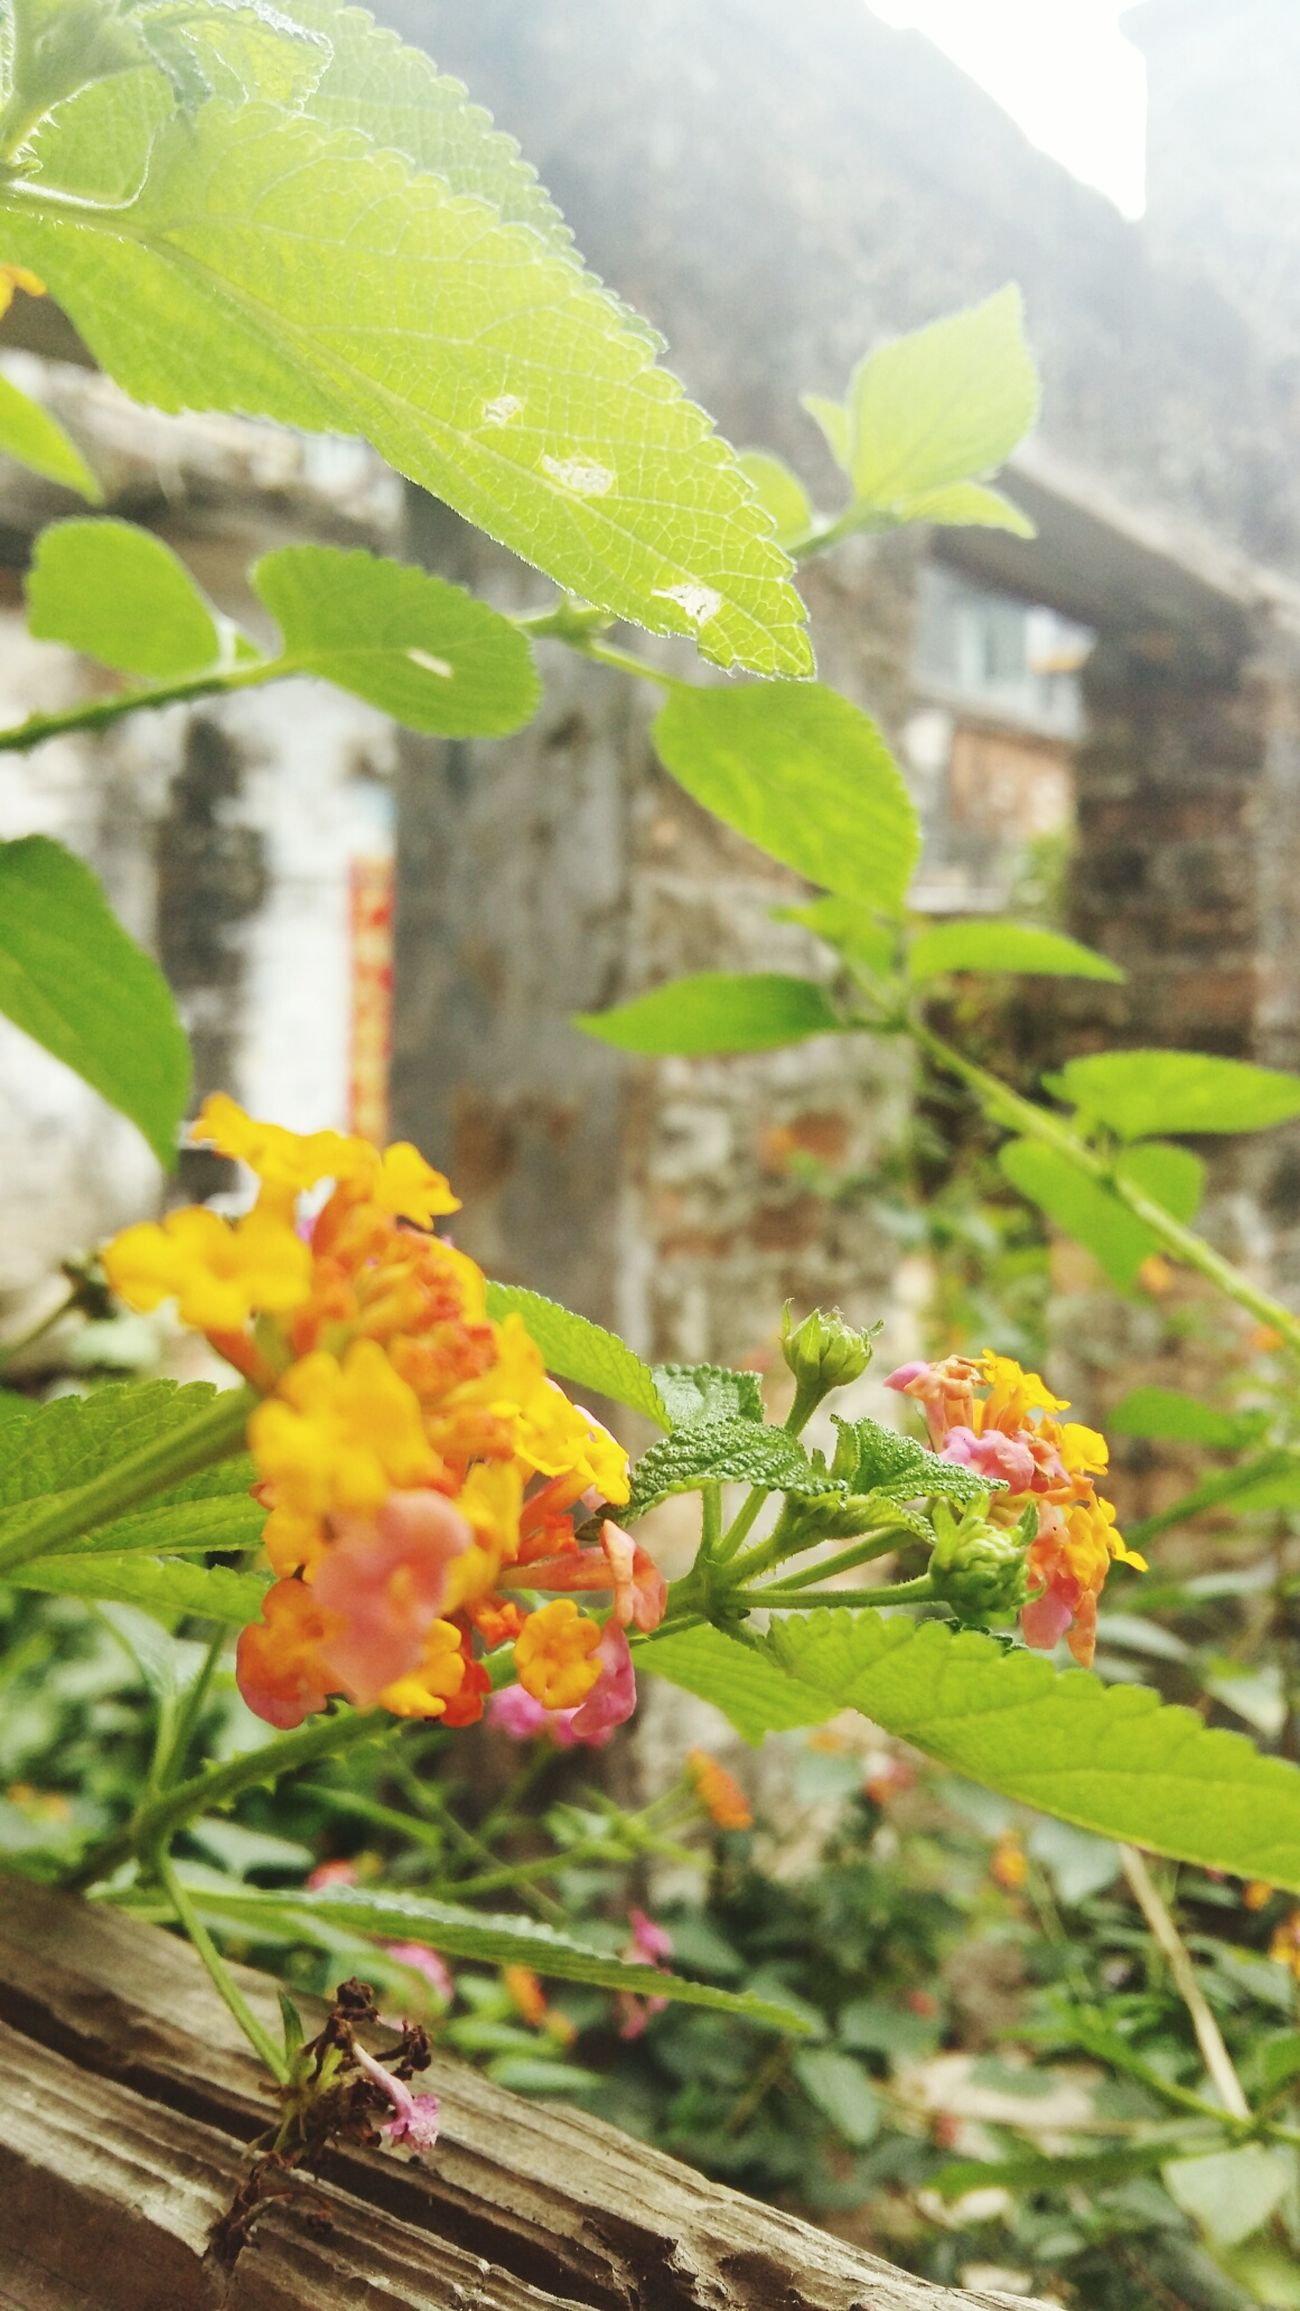 Leaf Plant Flower Nature Growth Beauty In Nature Day Green Color Freshness Fragility Flower Head Colorful Detail Close-up Old Buildings Focus - Zhuhai China